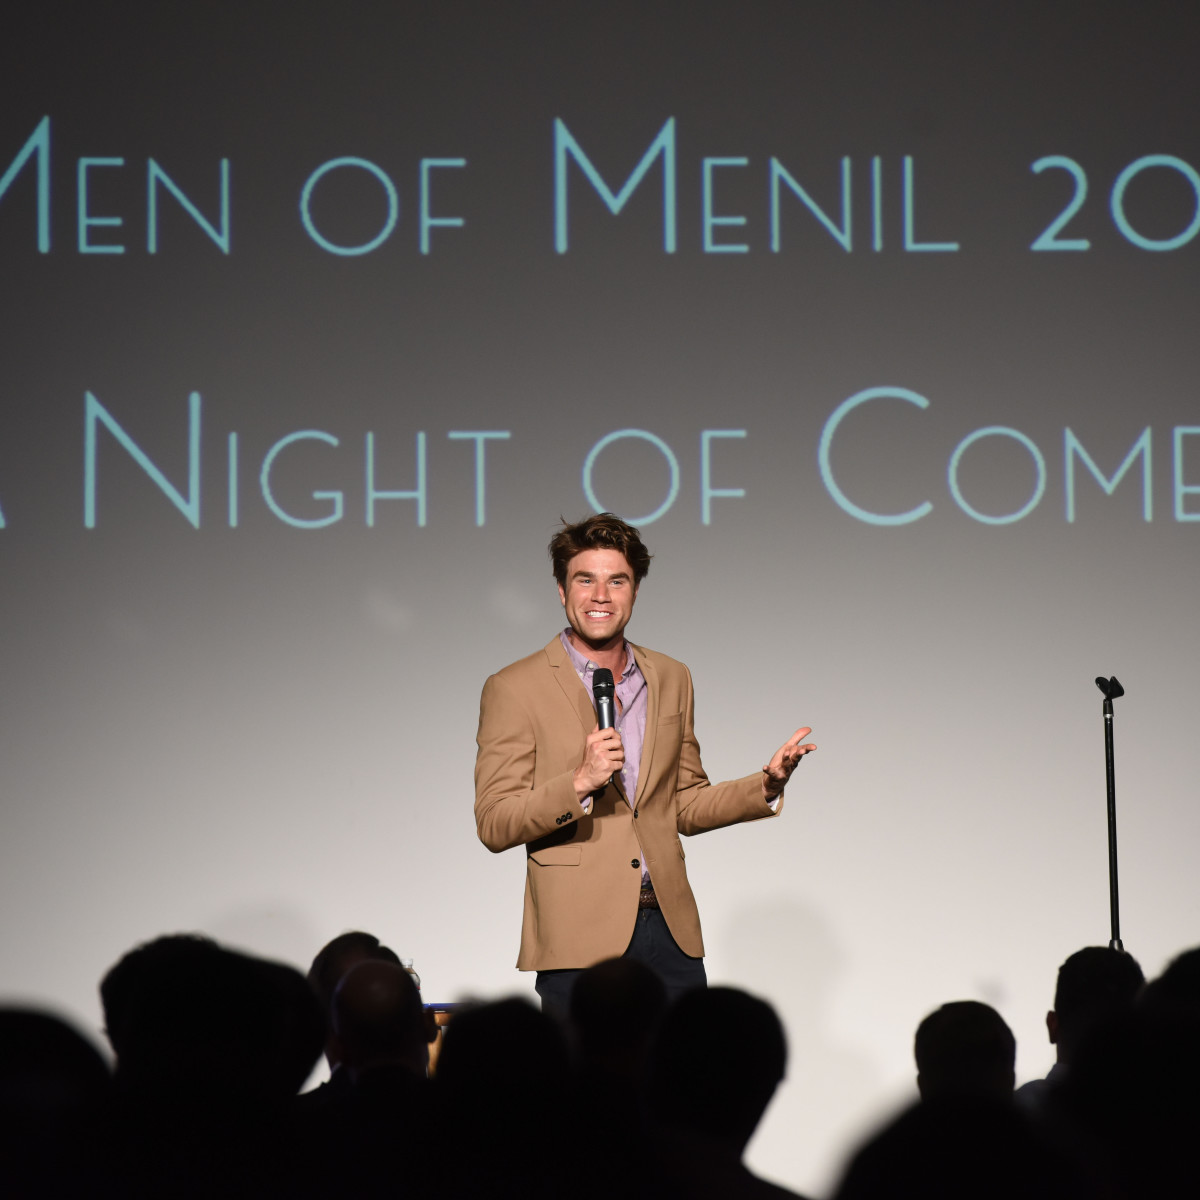 Men of Menil 2016 Opening Act, Comedian Matthew Broussard